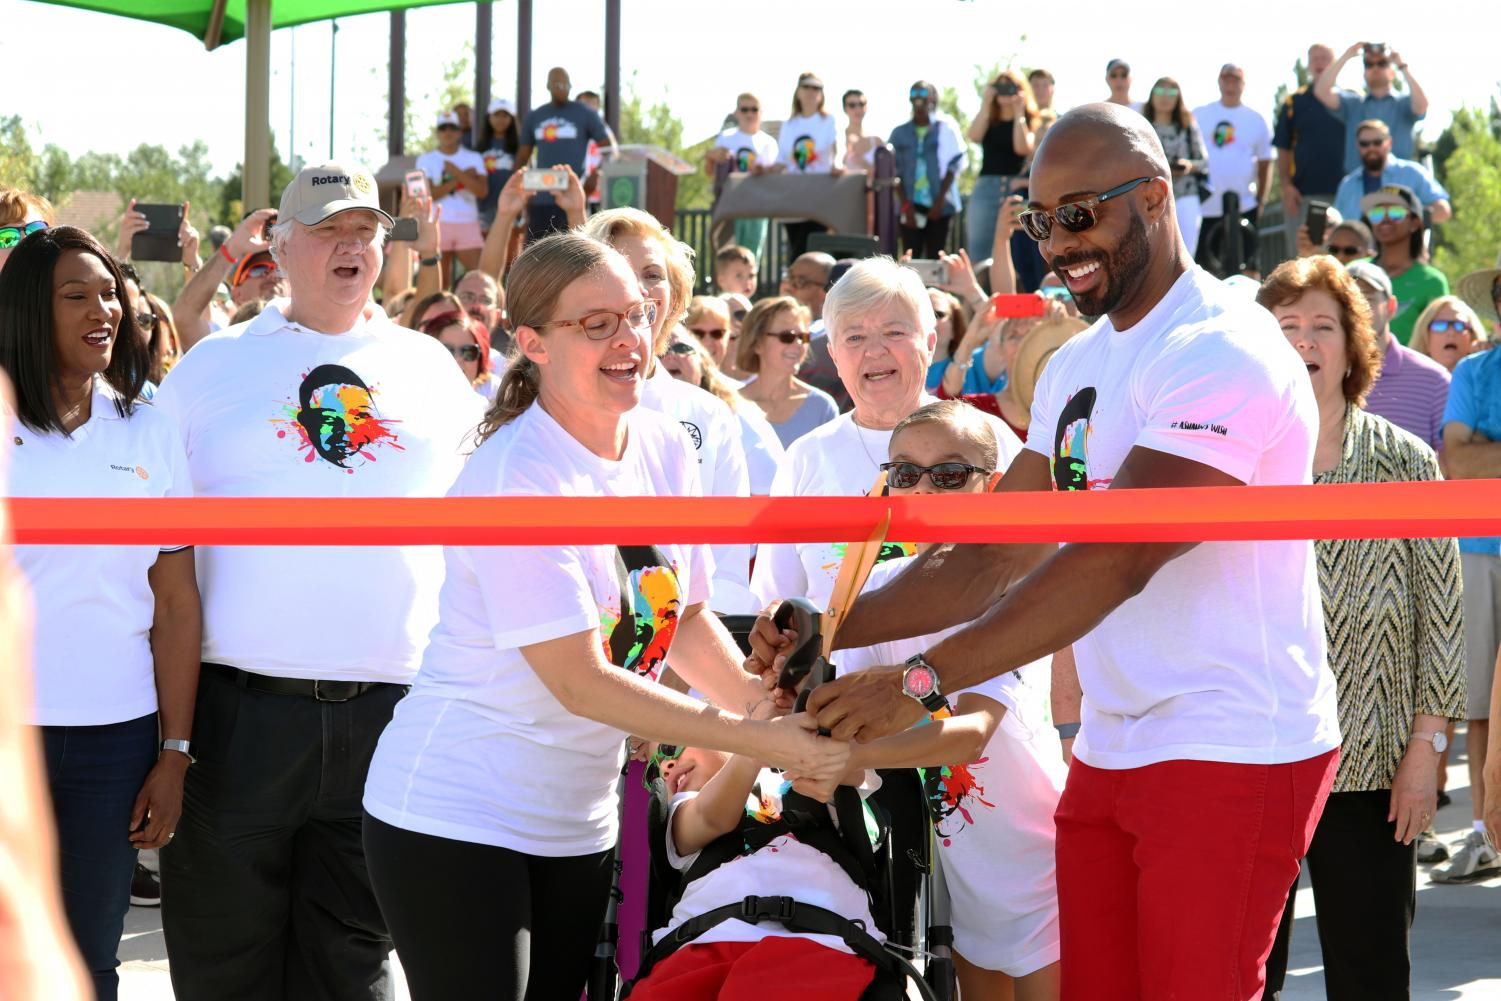 The City of Aurora hosted the grand opening of the Red Tailed Hawk Park on Saturday August 24th.